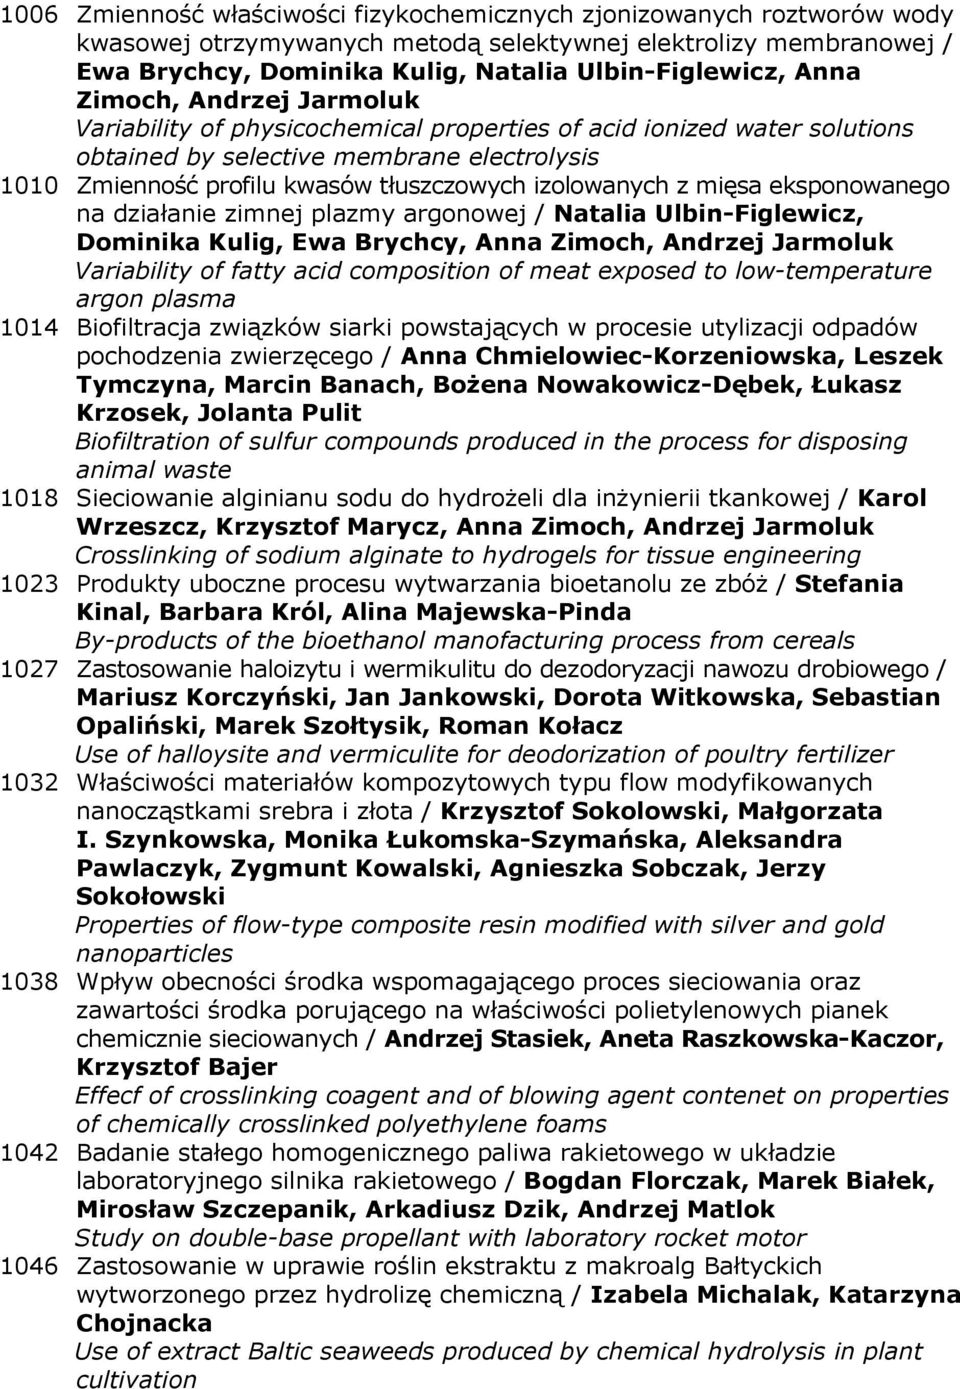 izolowanych z mięsa eksponowanego na działanie zimnej plazmy argonowej / Natalia Ulbin-Figlewicz, Dominika Kulig, Ewa Brychcy, Anna Zimoch, Andrzej Jarmoluk Variability of fatty acid composition of